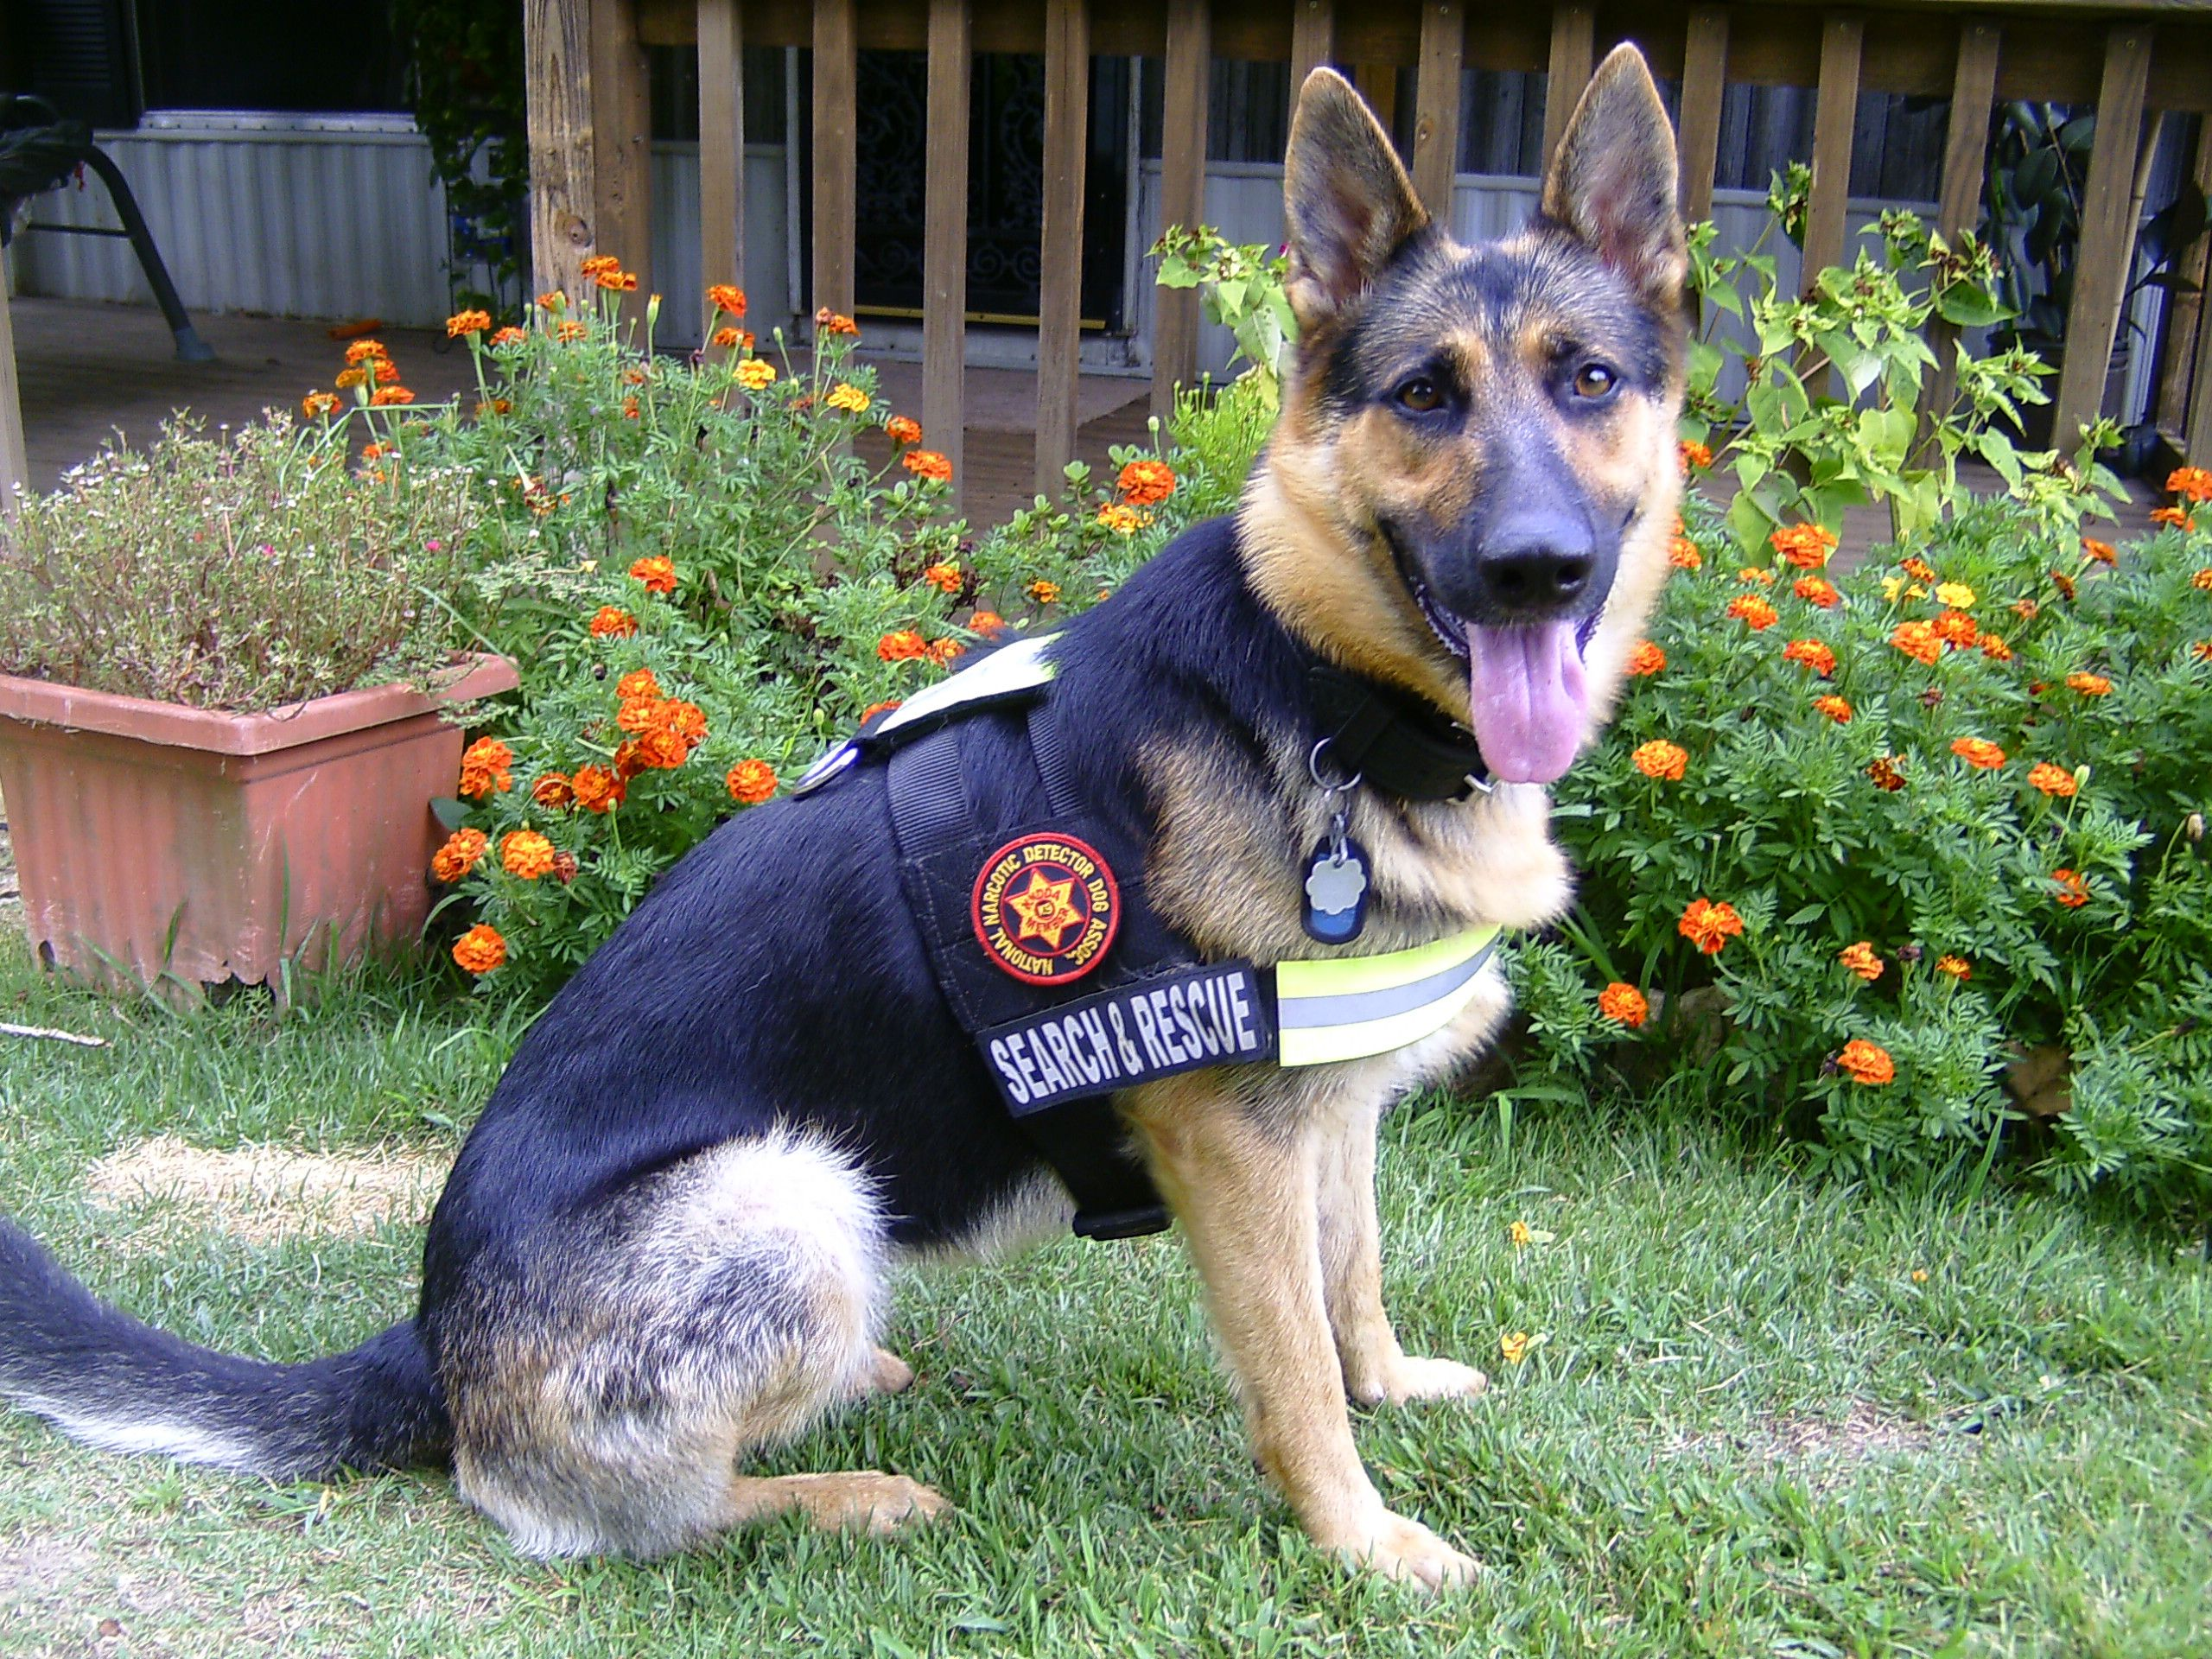 K-9 Jodi is a volunteer Search and Rescue K-9 for the ...